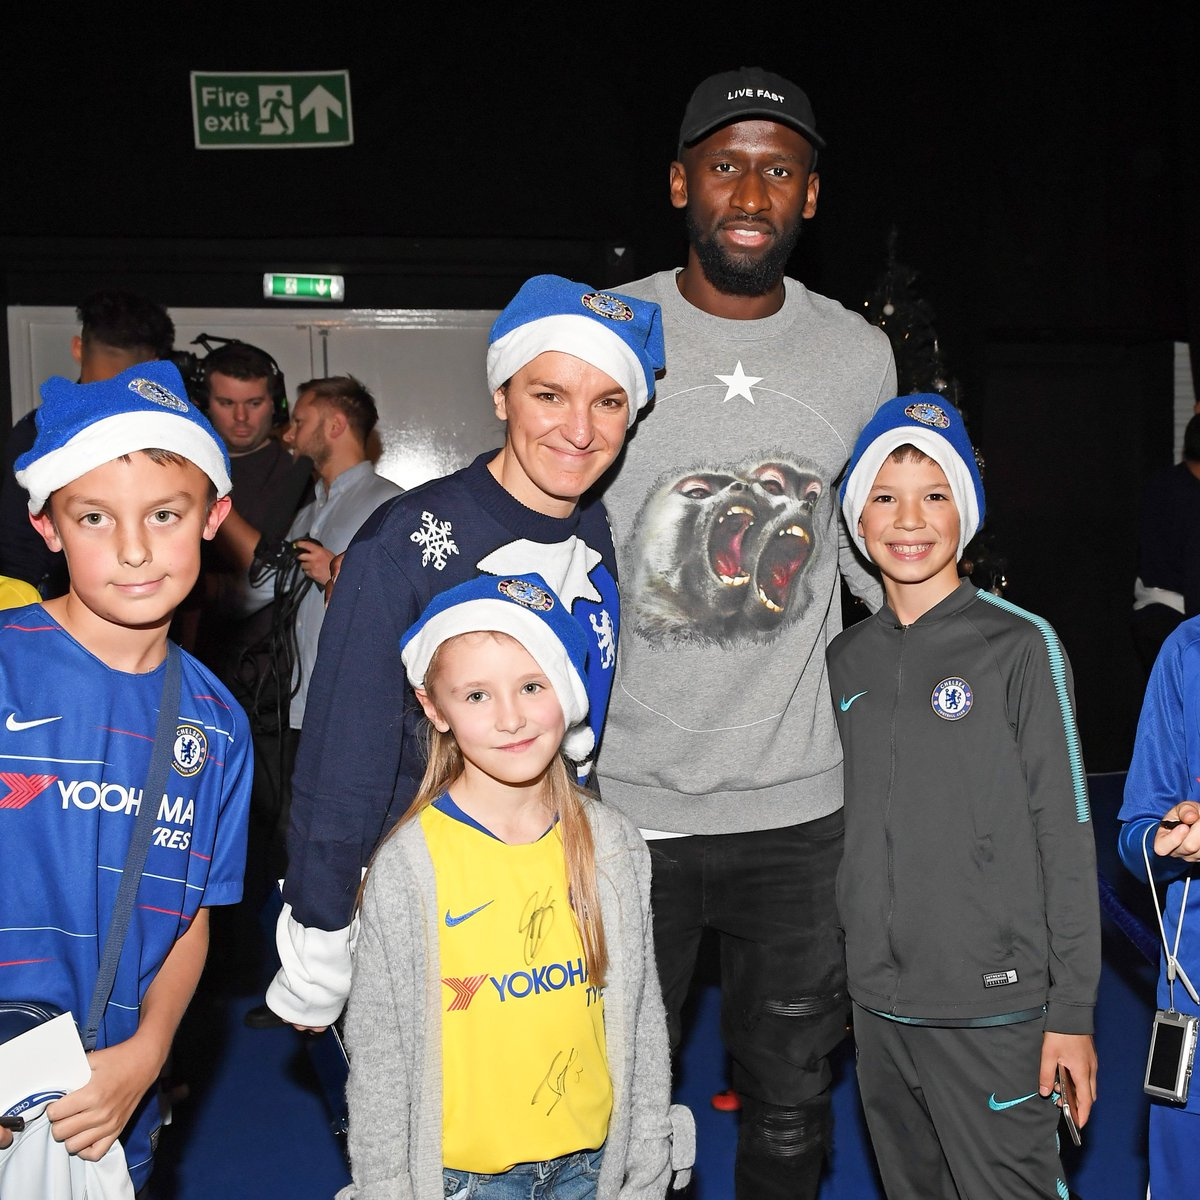 Surprise visit at Bridge kids party yesterday. Always a pleasure to make some young fans happy 🙏🏾💙 #ChelseaFamily #AlwaysBelieve #Hustle @ChelseaFC